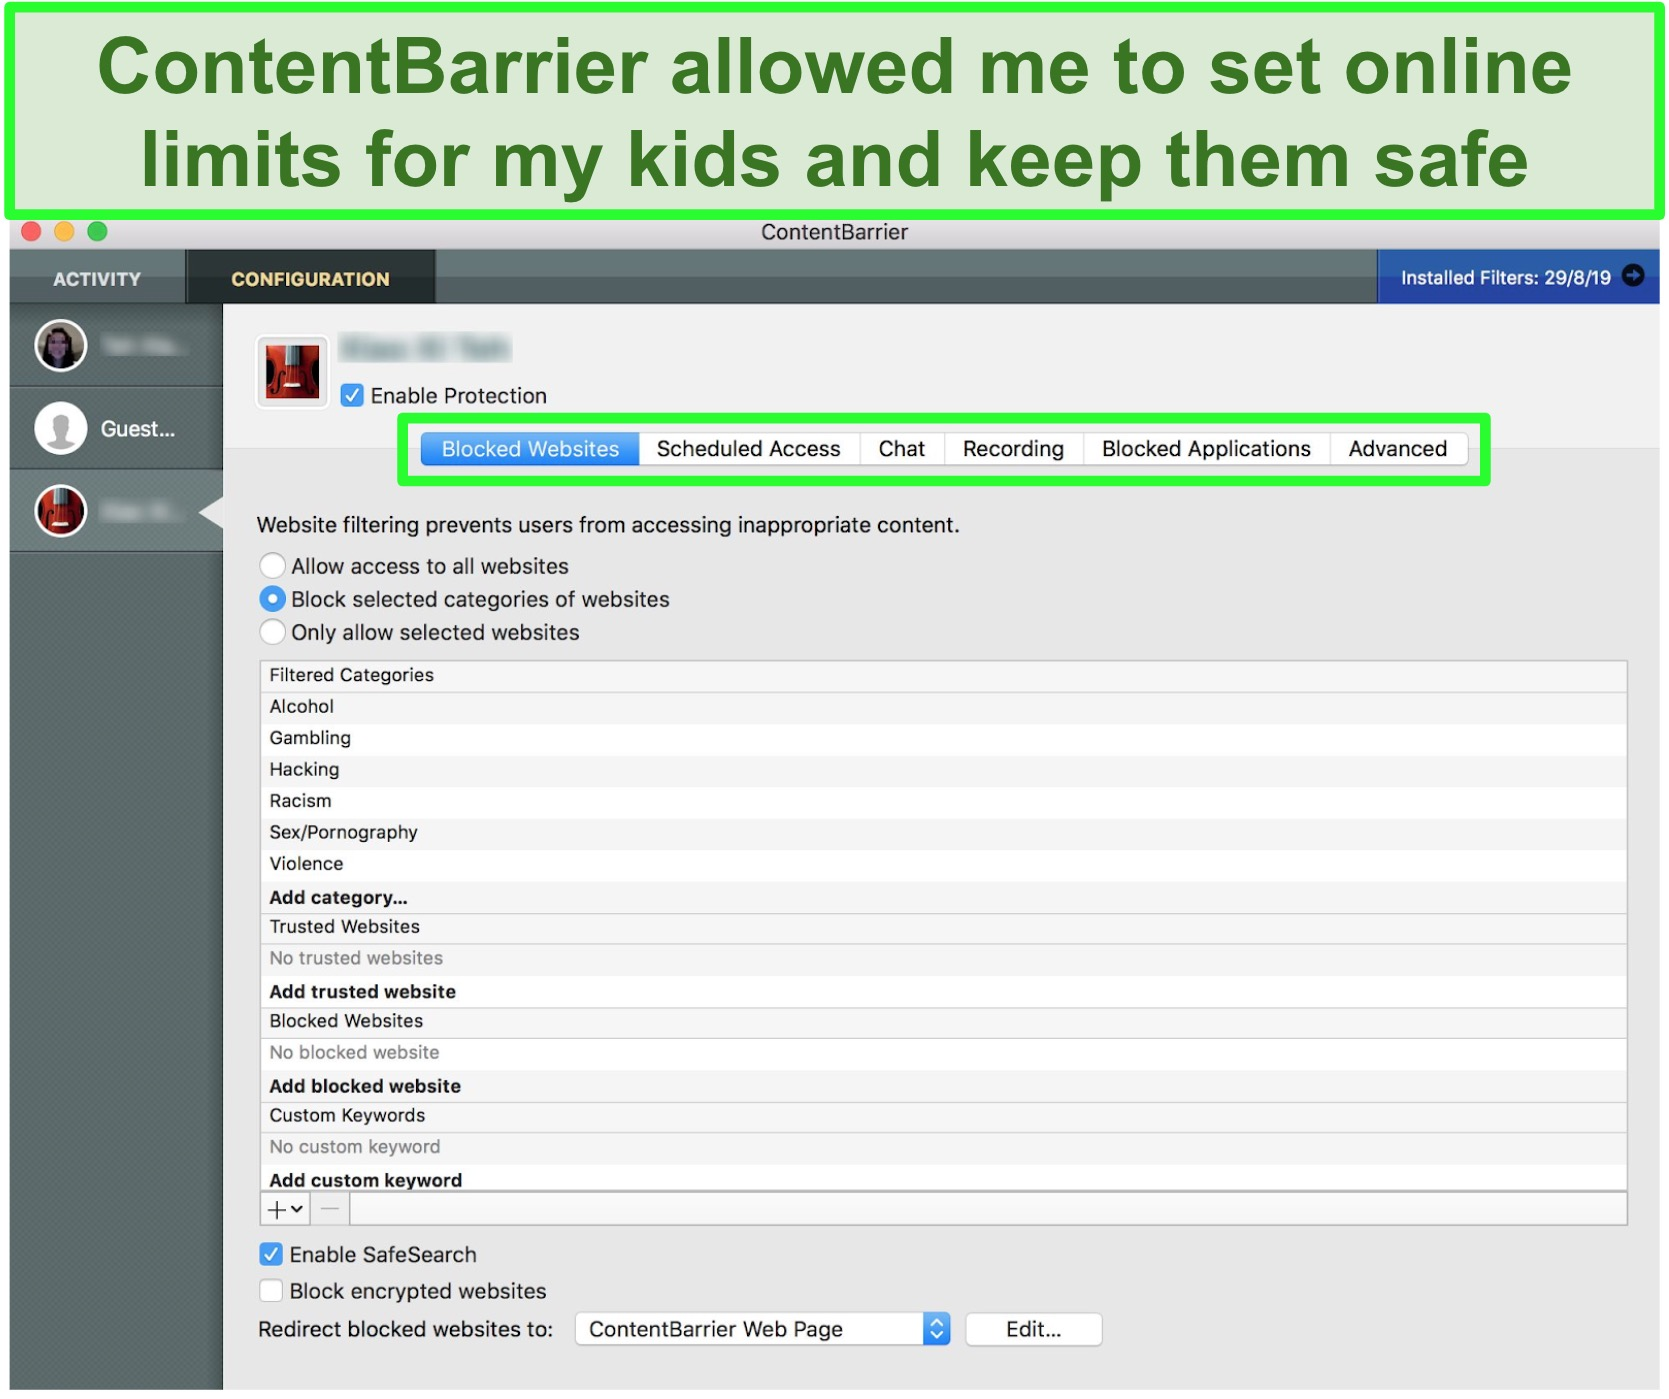 creenshot of ContentBarrier interface showing different parental control settings